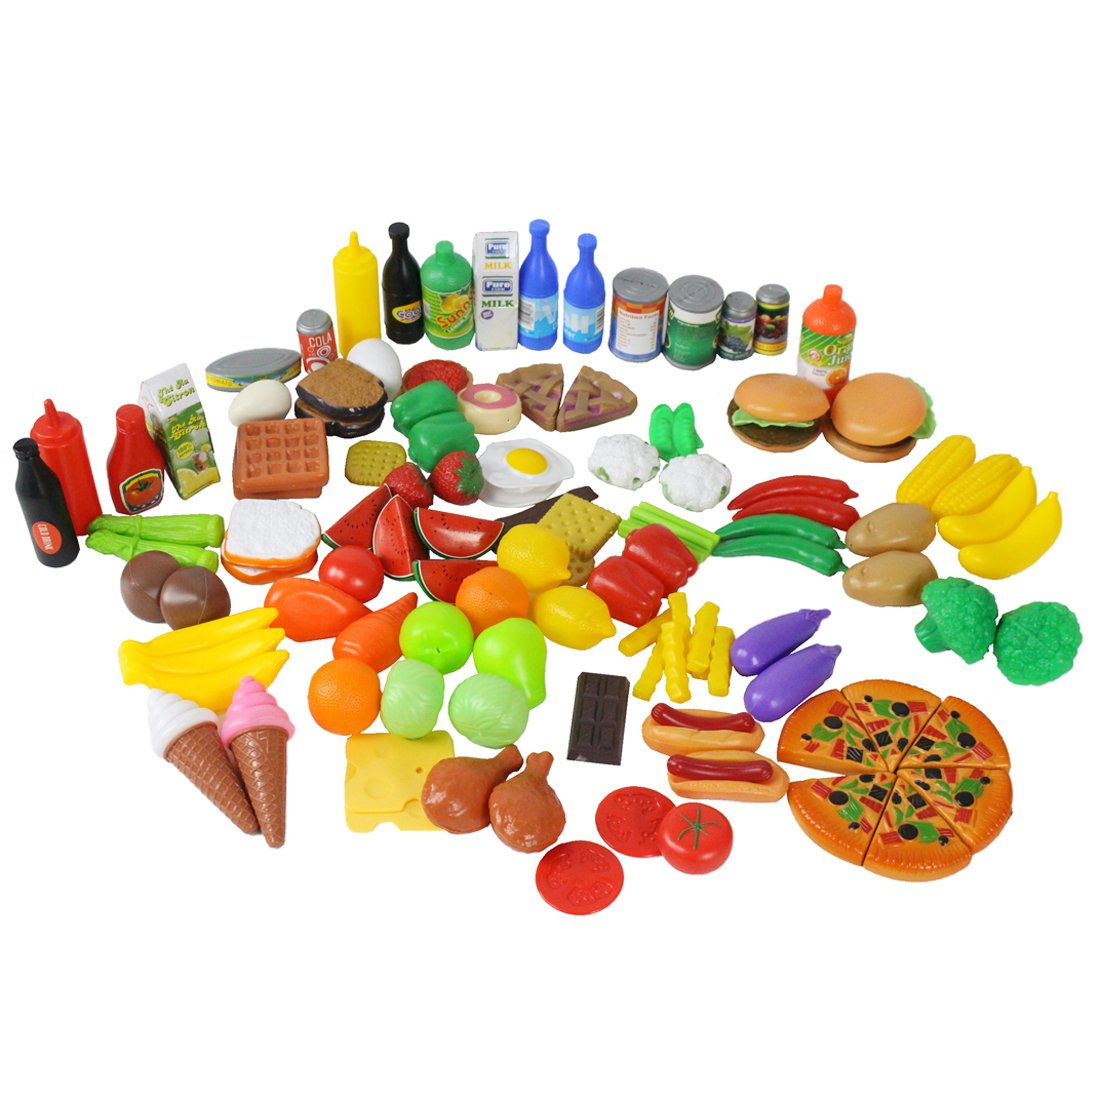 CatchStar Play Food for Kids Kitchen Durable Pretend Set Variety Accessories Plastic Gift Toys for Toddlers (120 Piece)